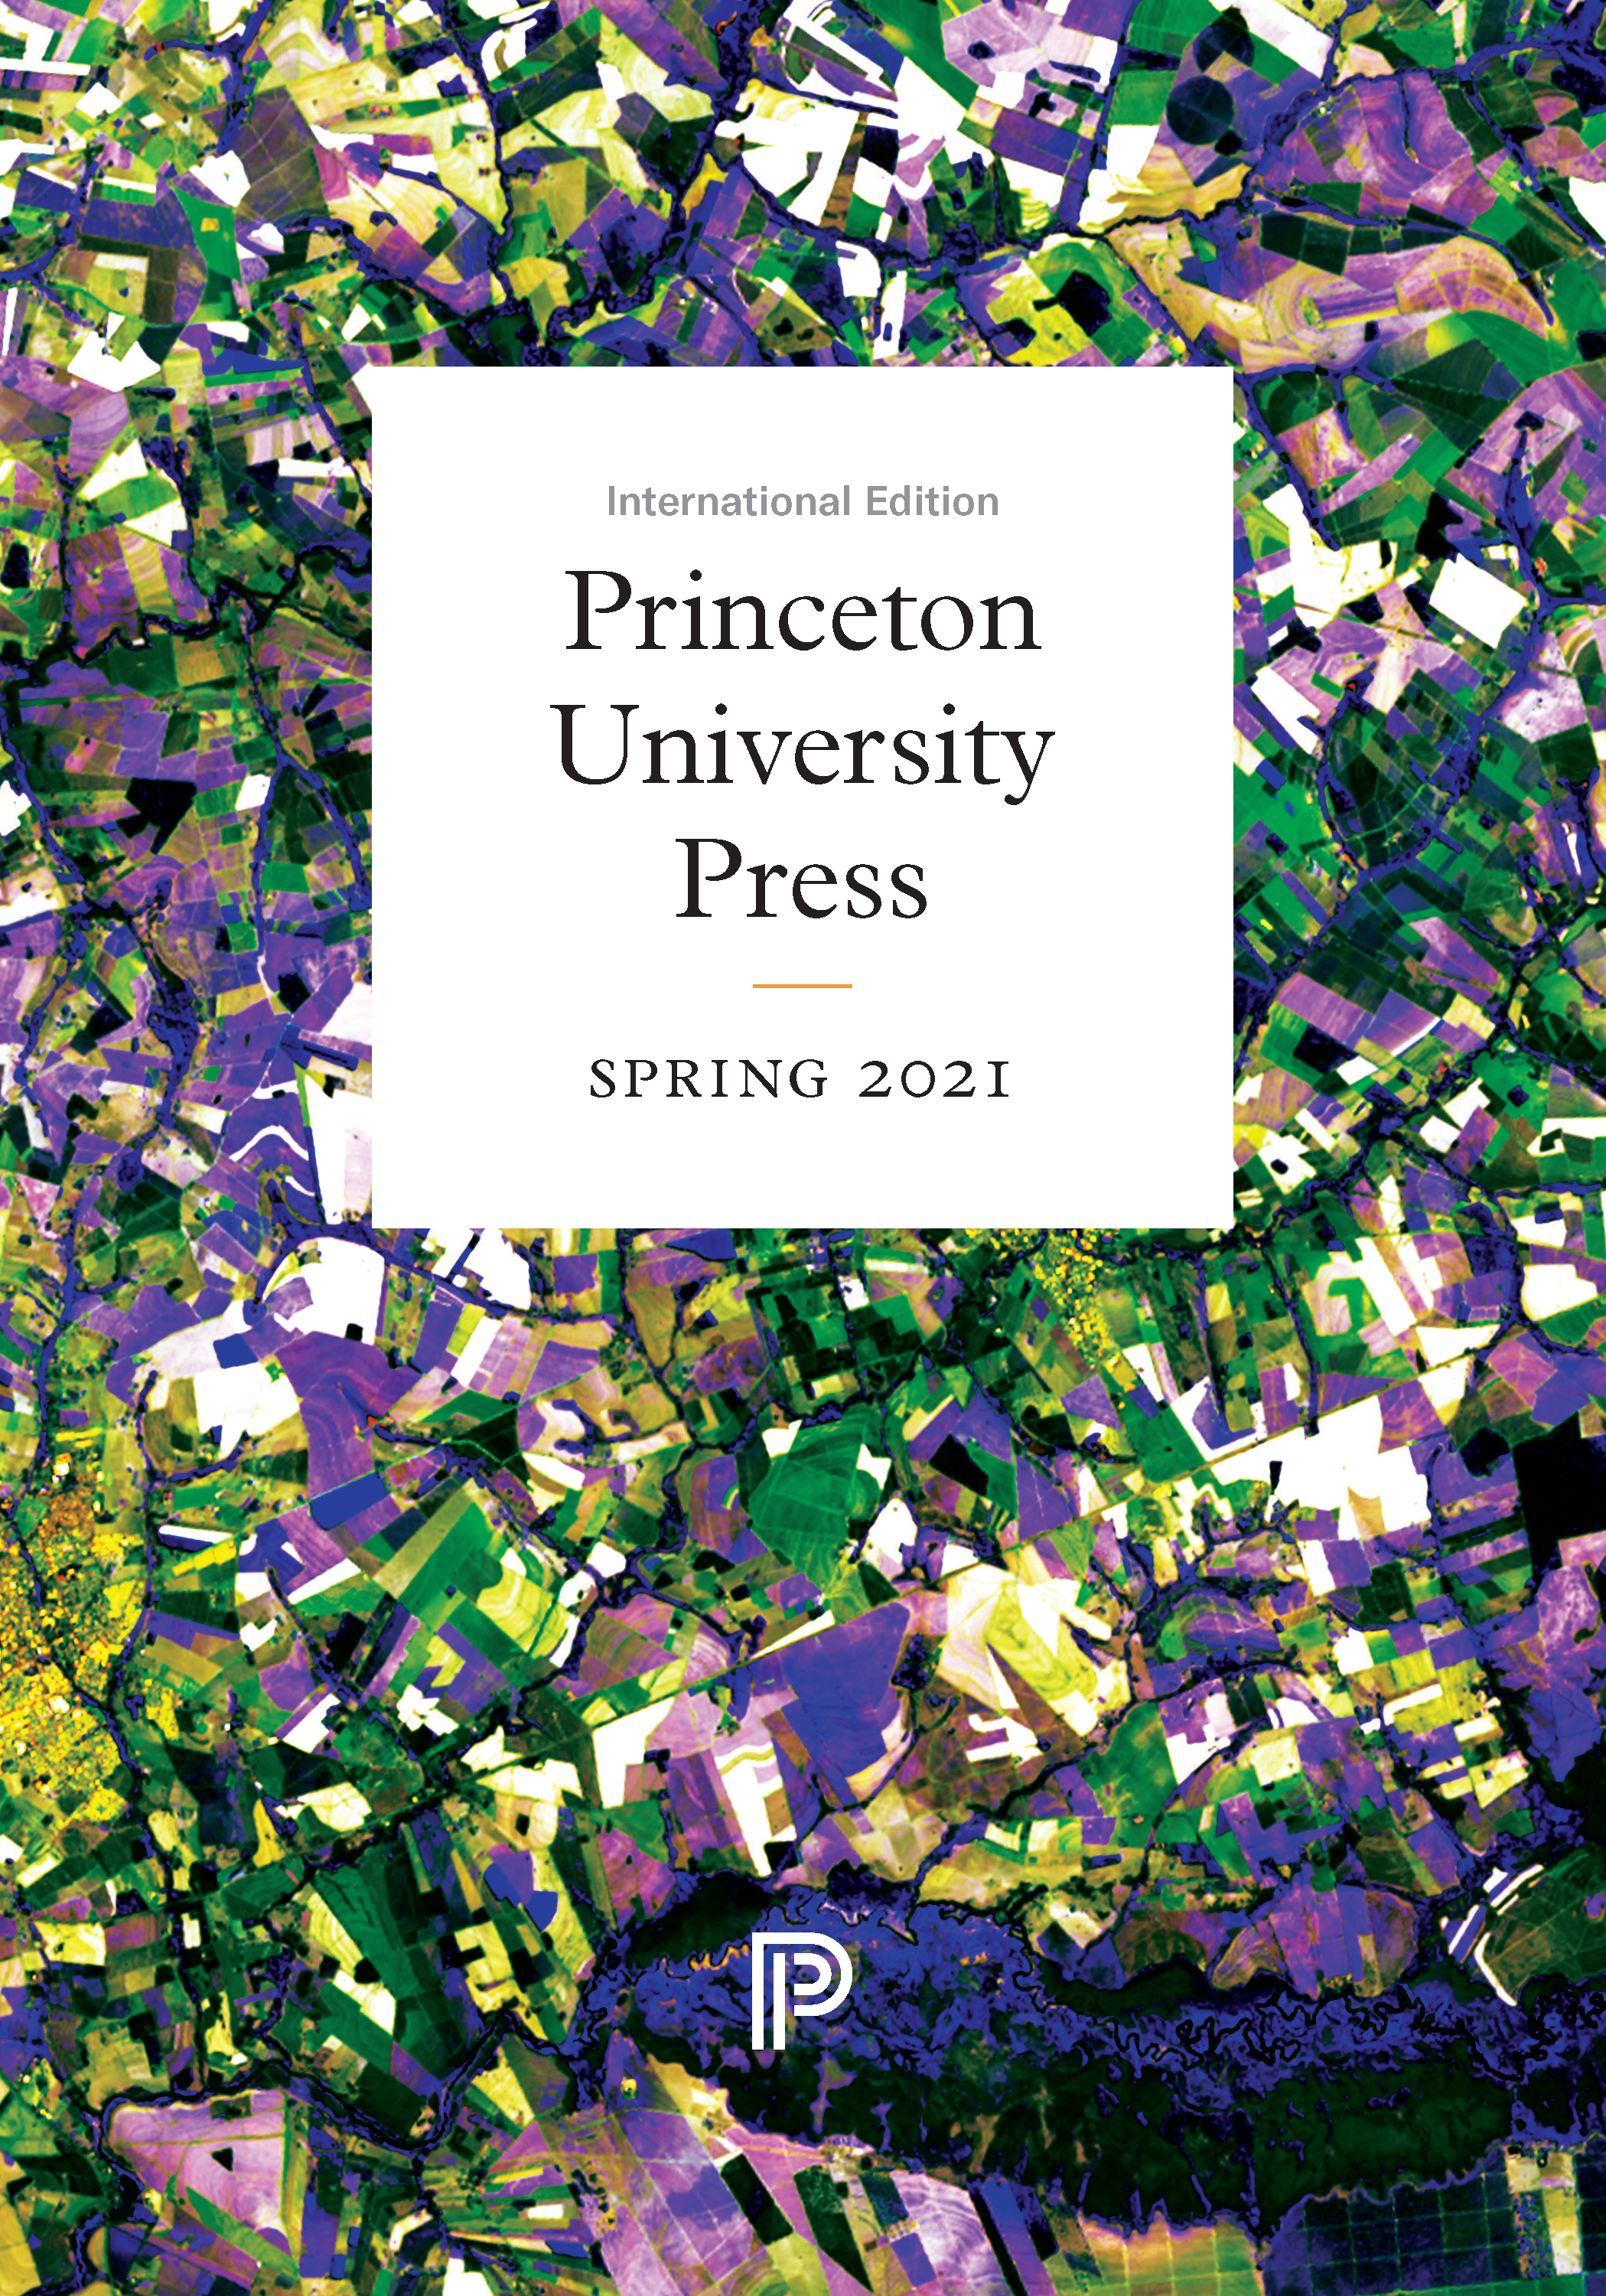 Spring 2021 International Cover